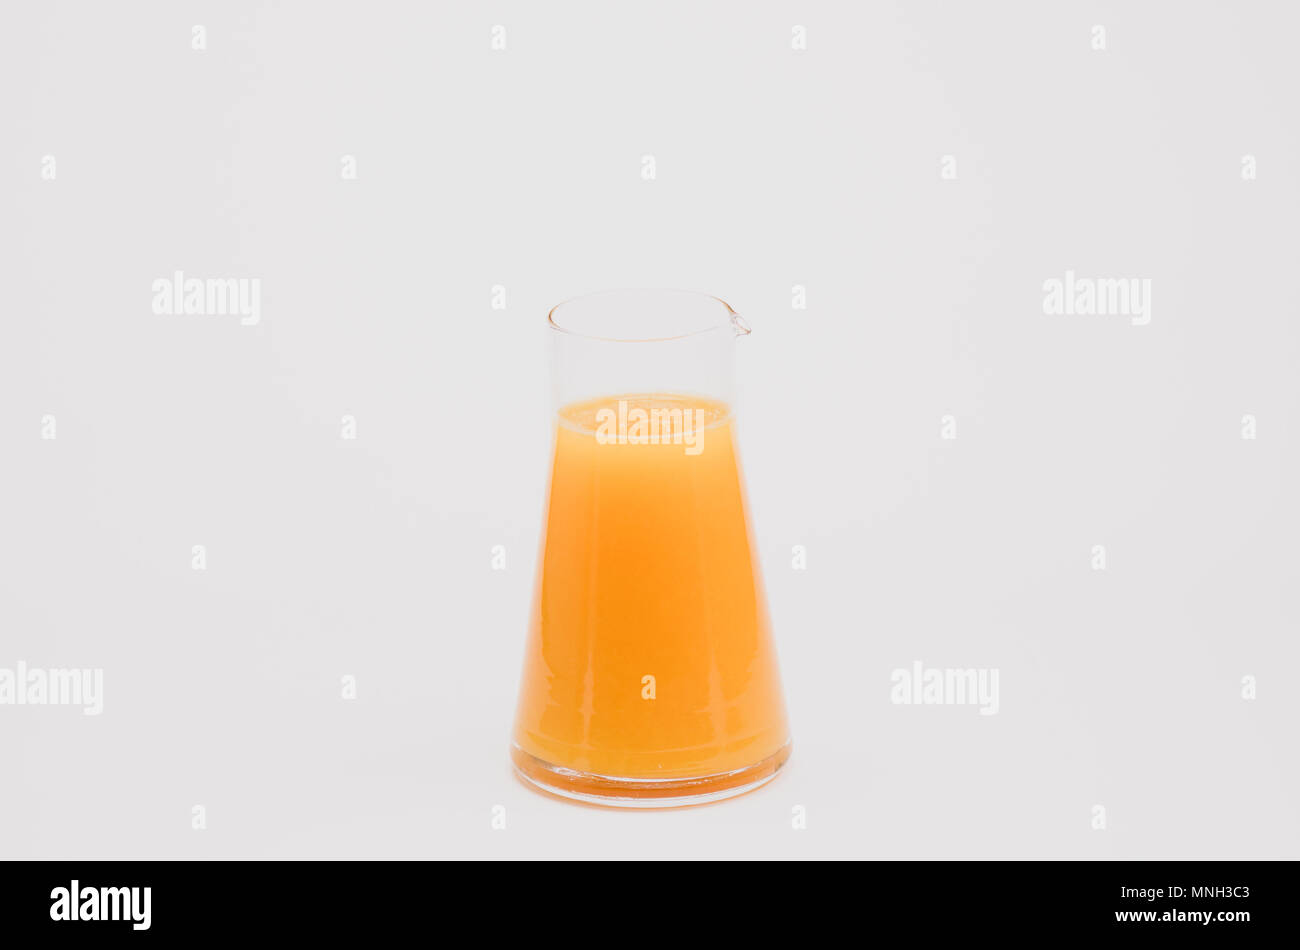 freshly squeezed oranges in a glass - white background - Stock Image